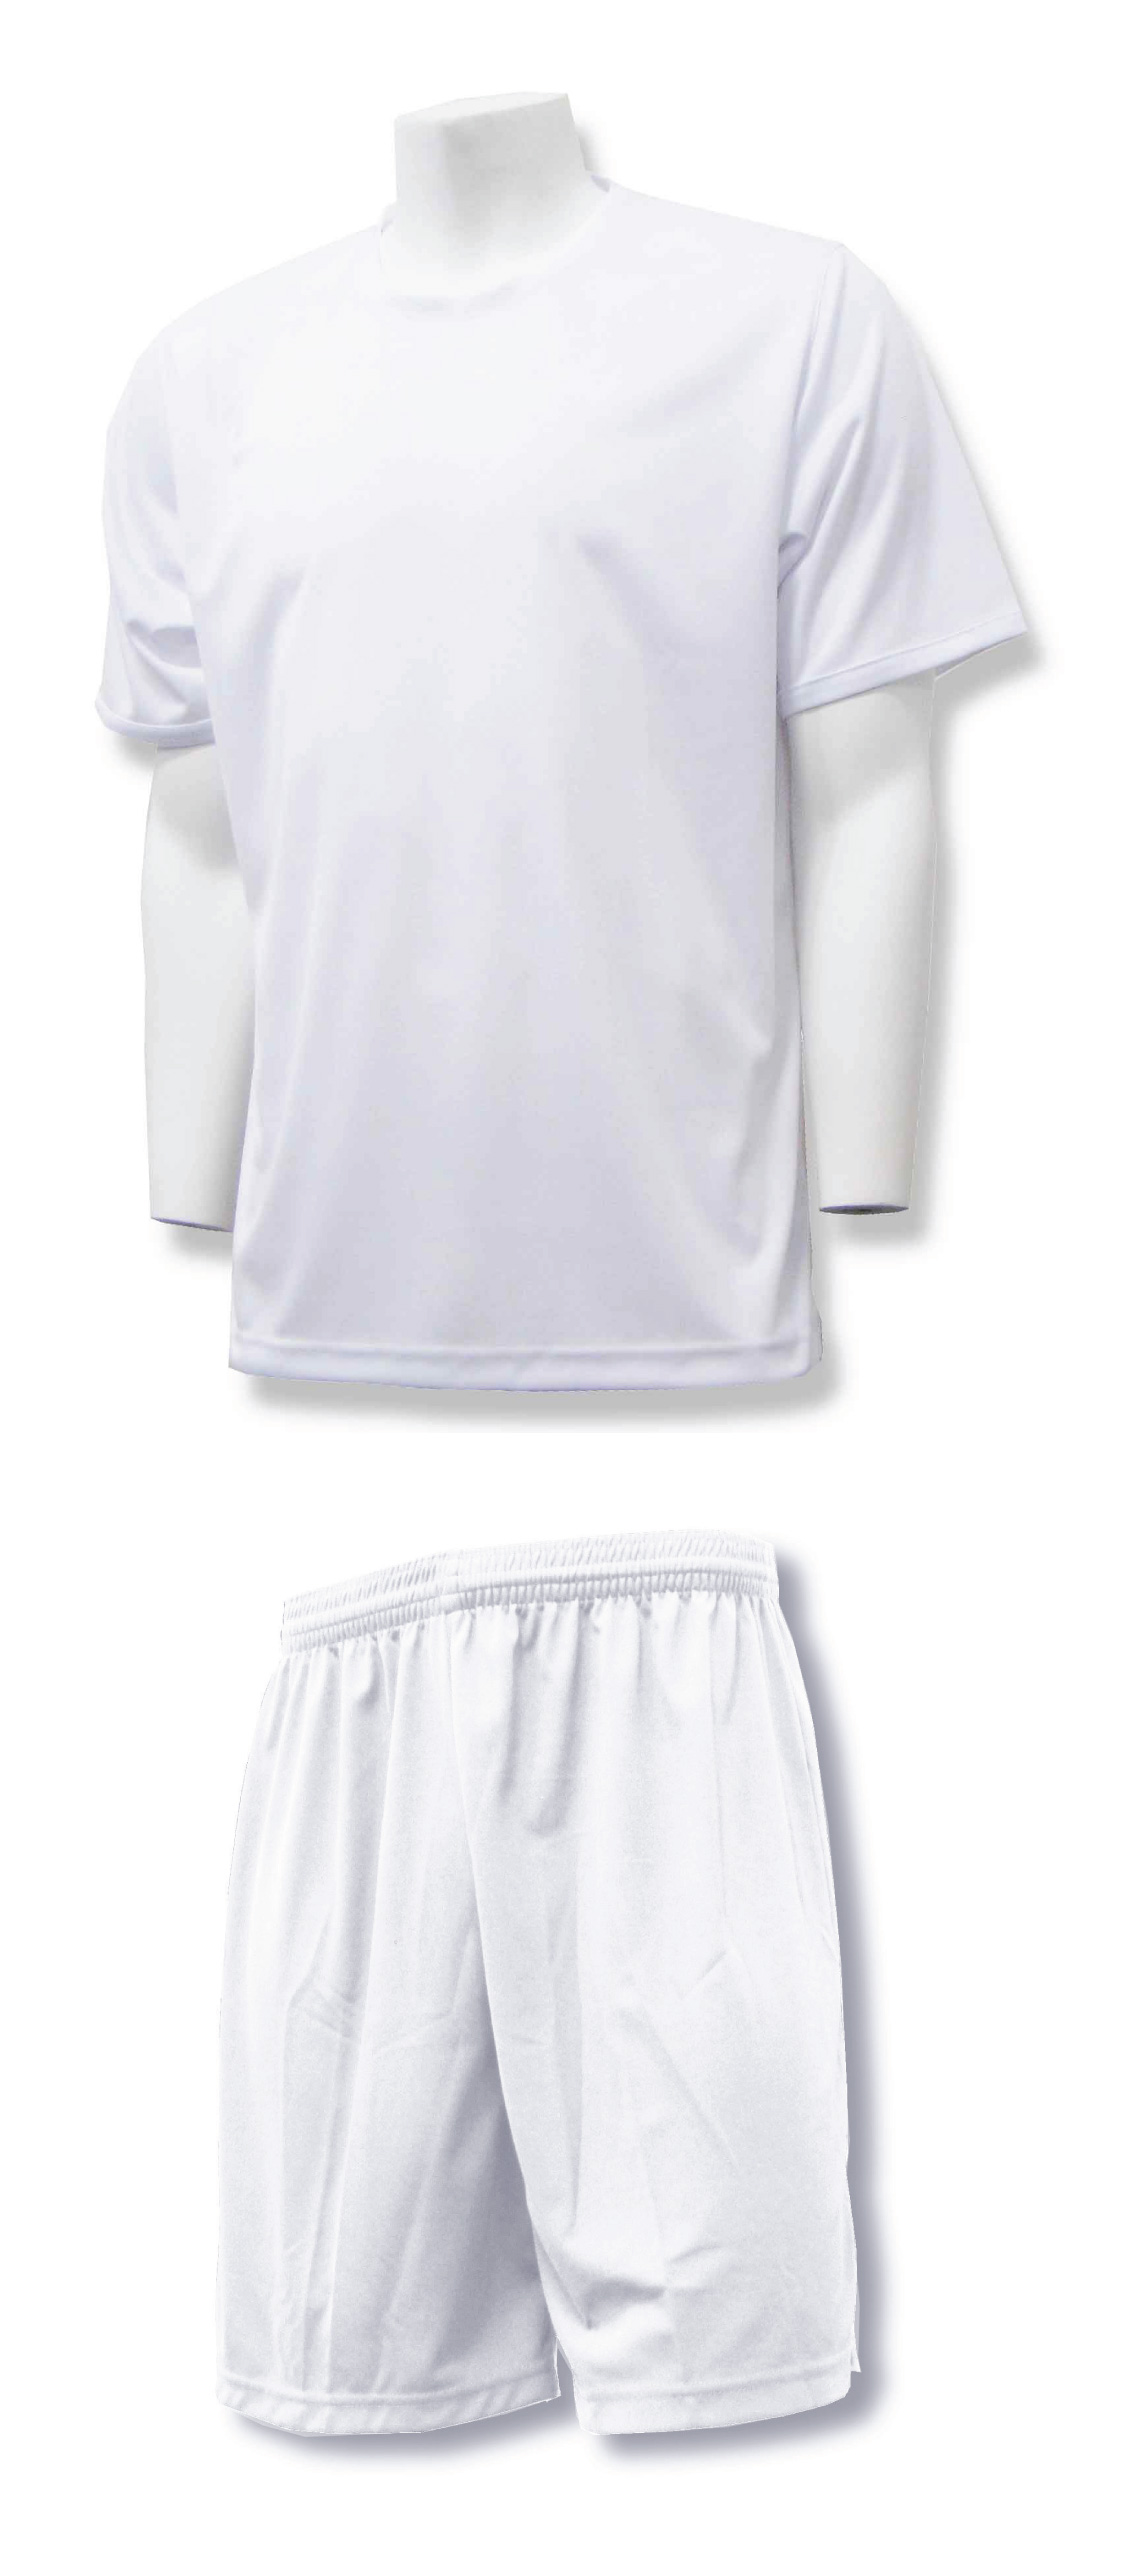 Soccer training kit in white/white by Code Four Athletics